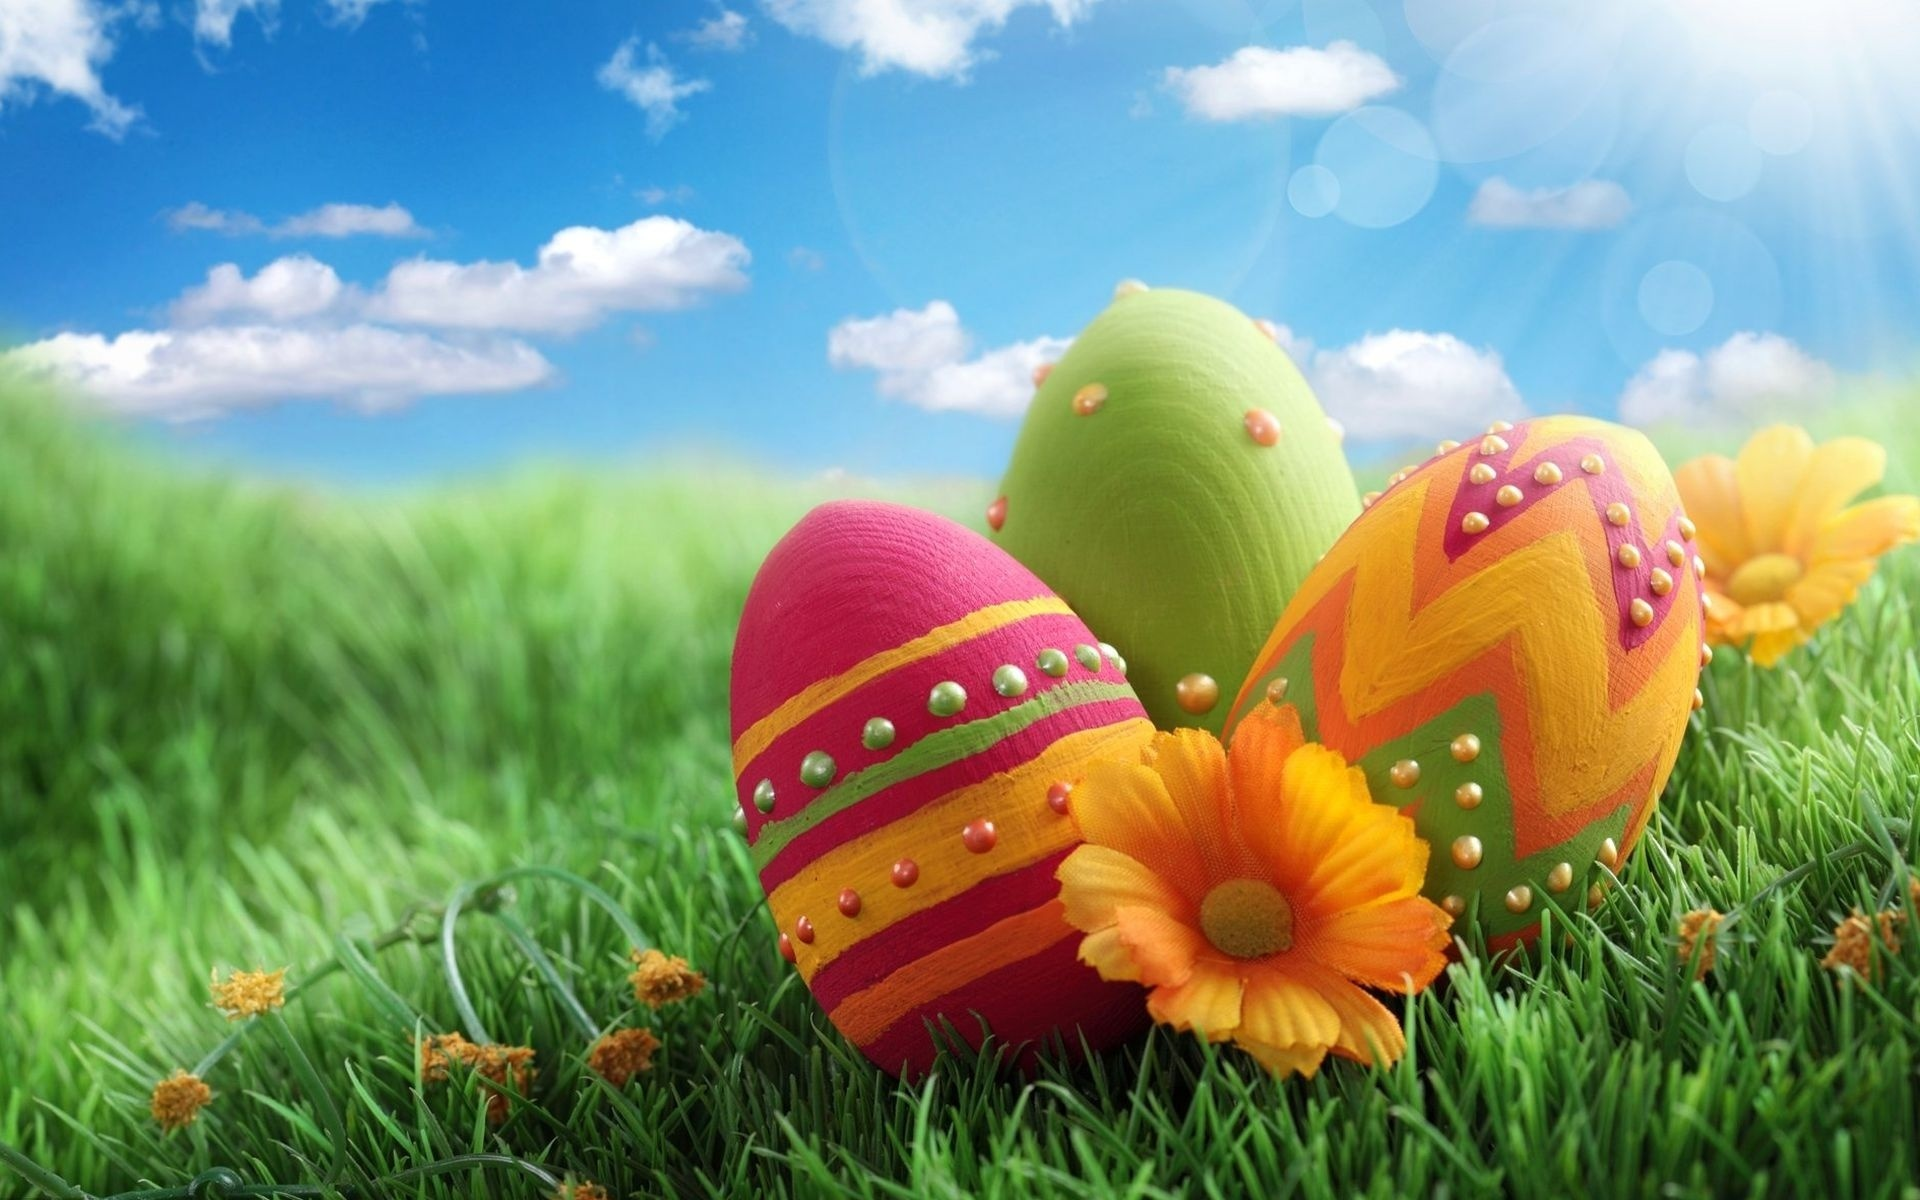 Easter Wallpapers Archives   Page 8 of 10   HD Desktop 1920x1200